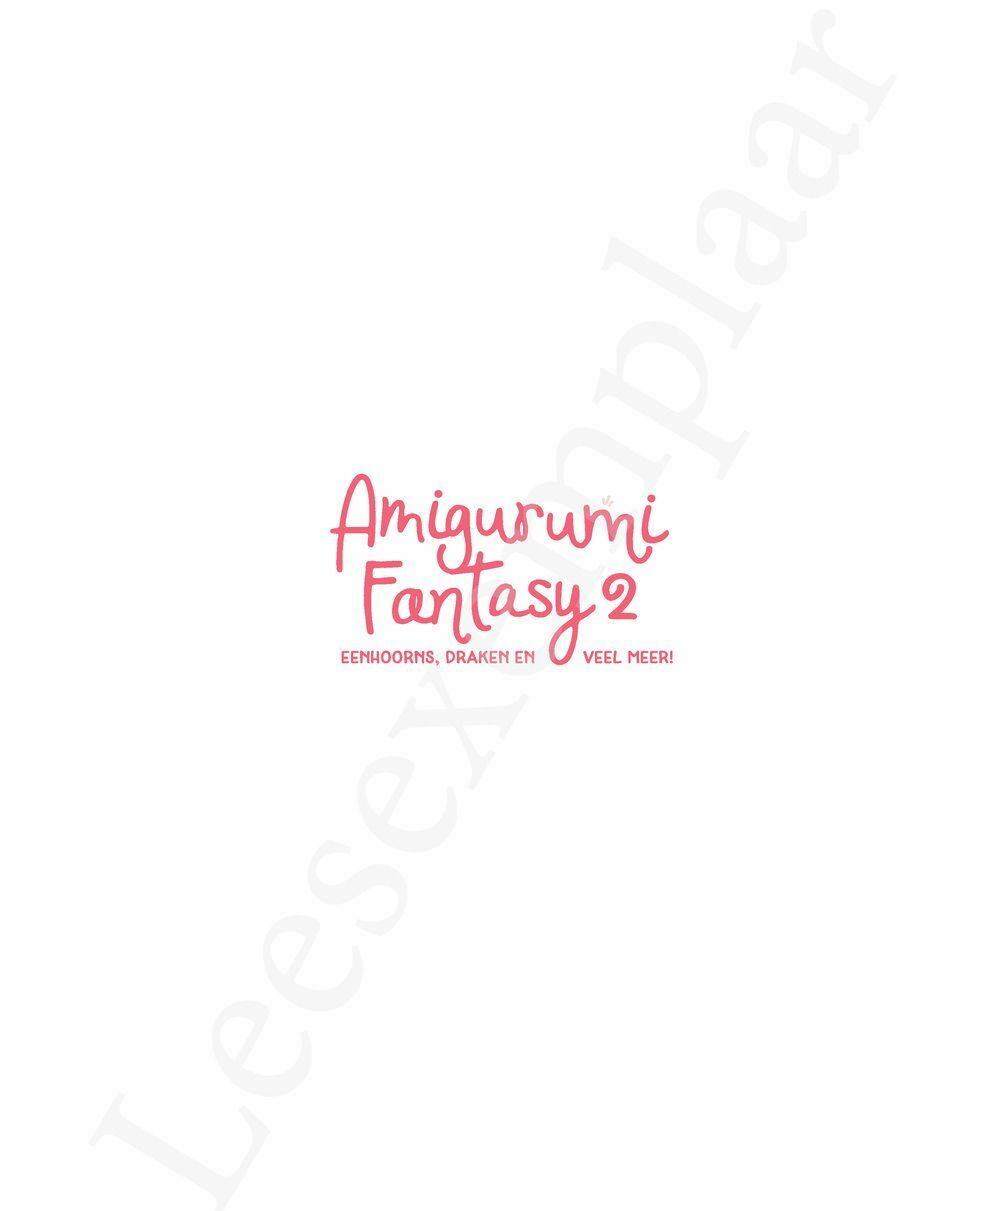 Preview: Amigurumi Fantasy 2